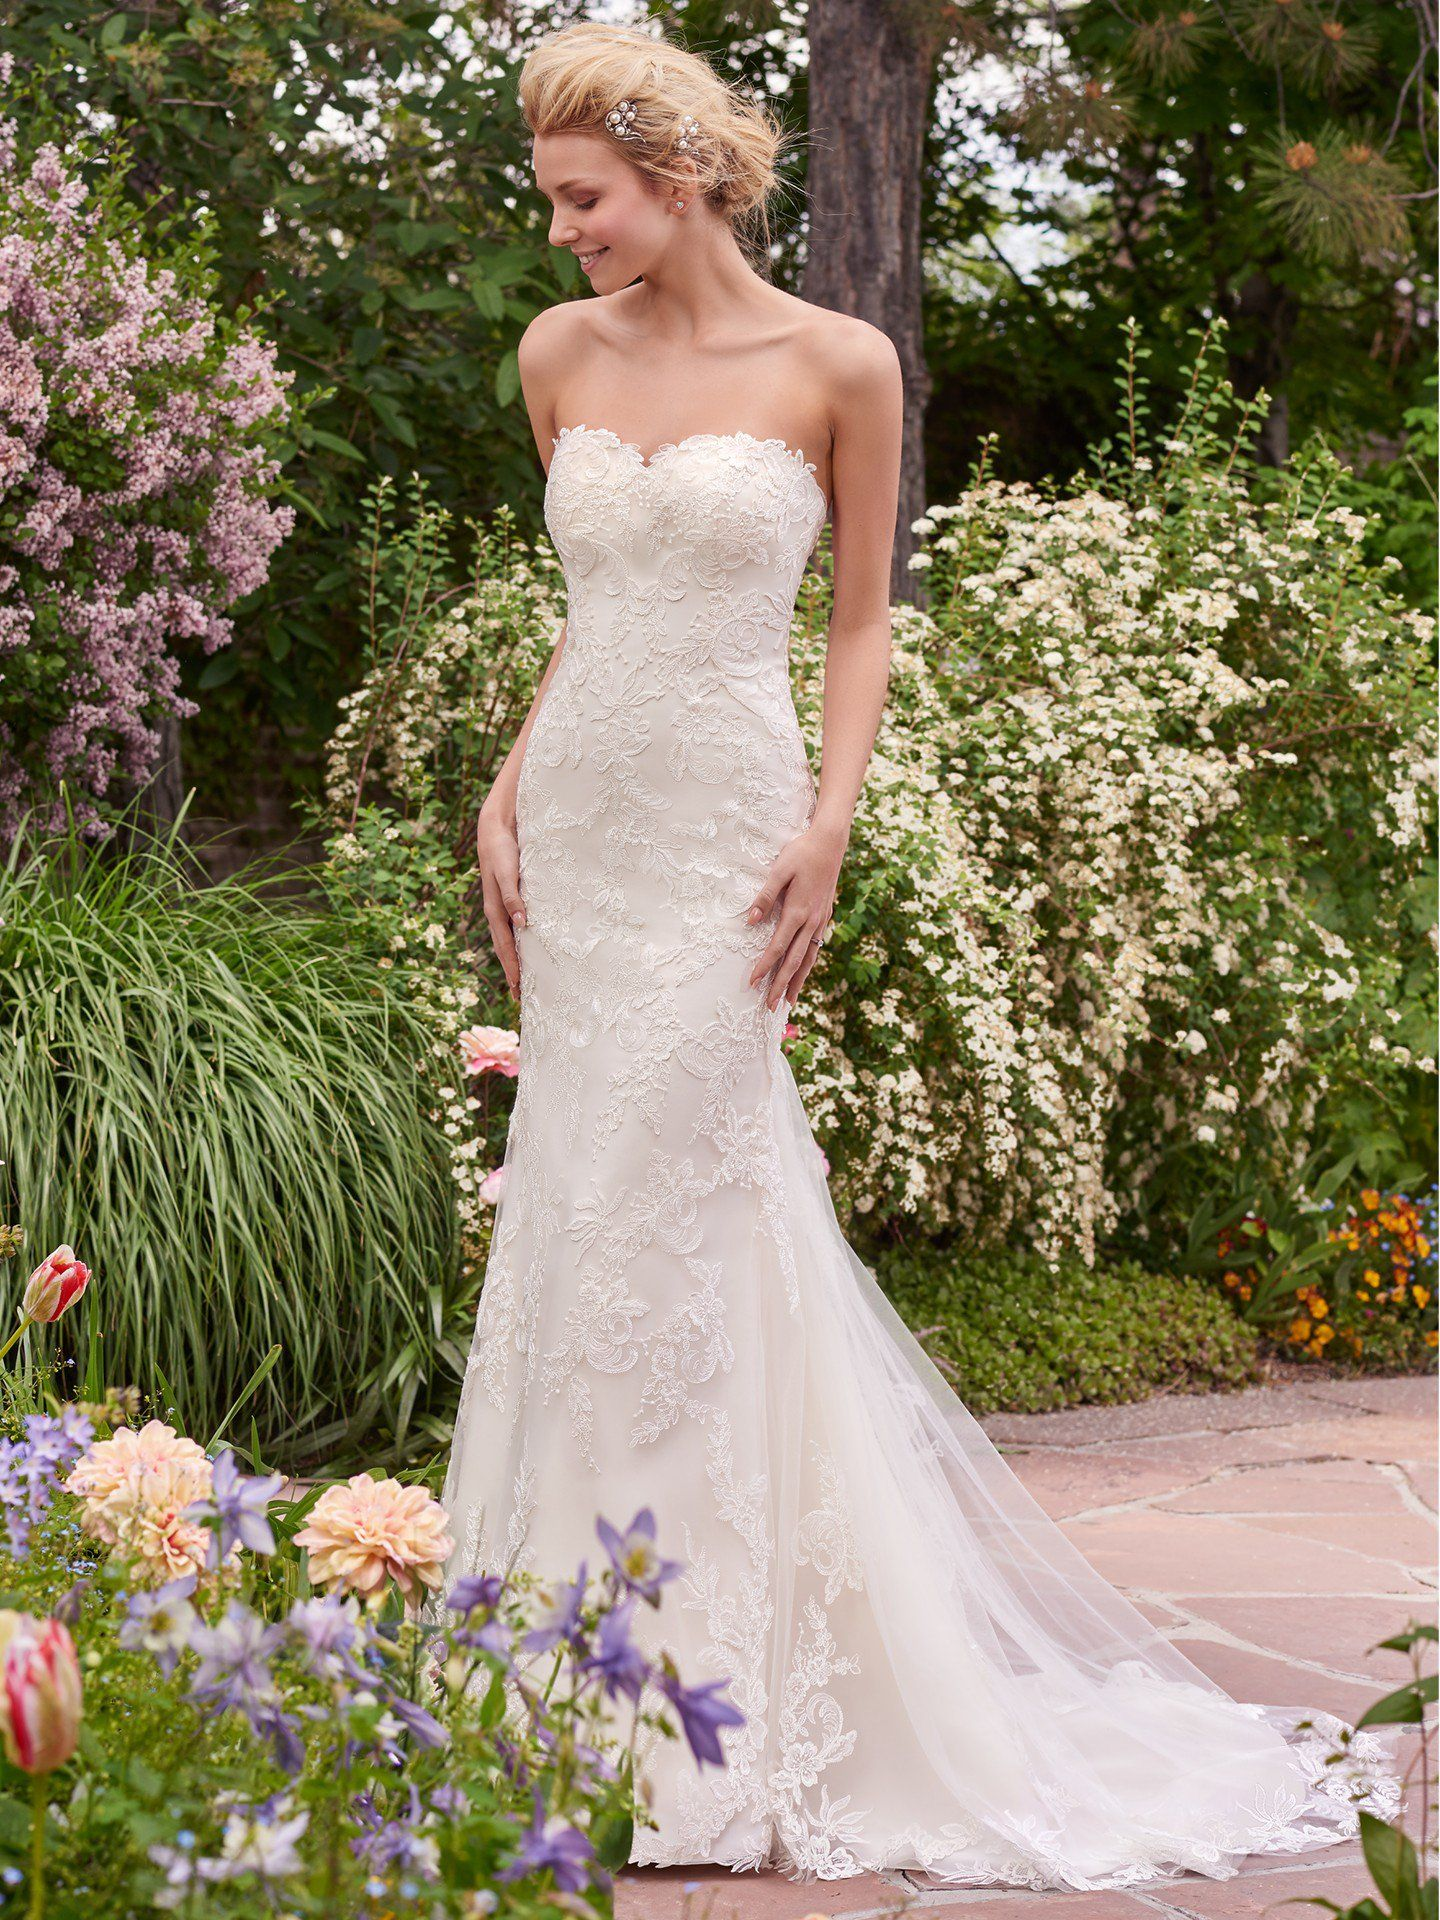 Maggie Sottero Wedding Dresses | Pinterest | Brautkleid